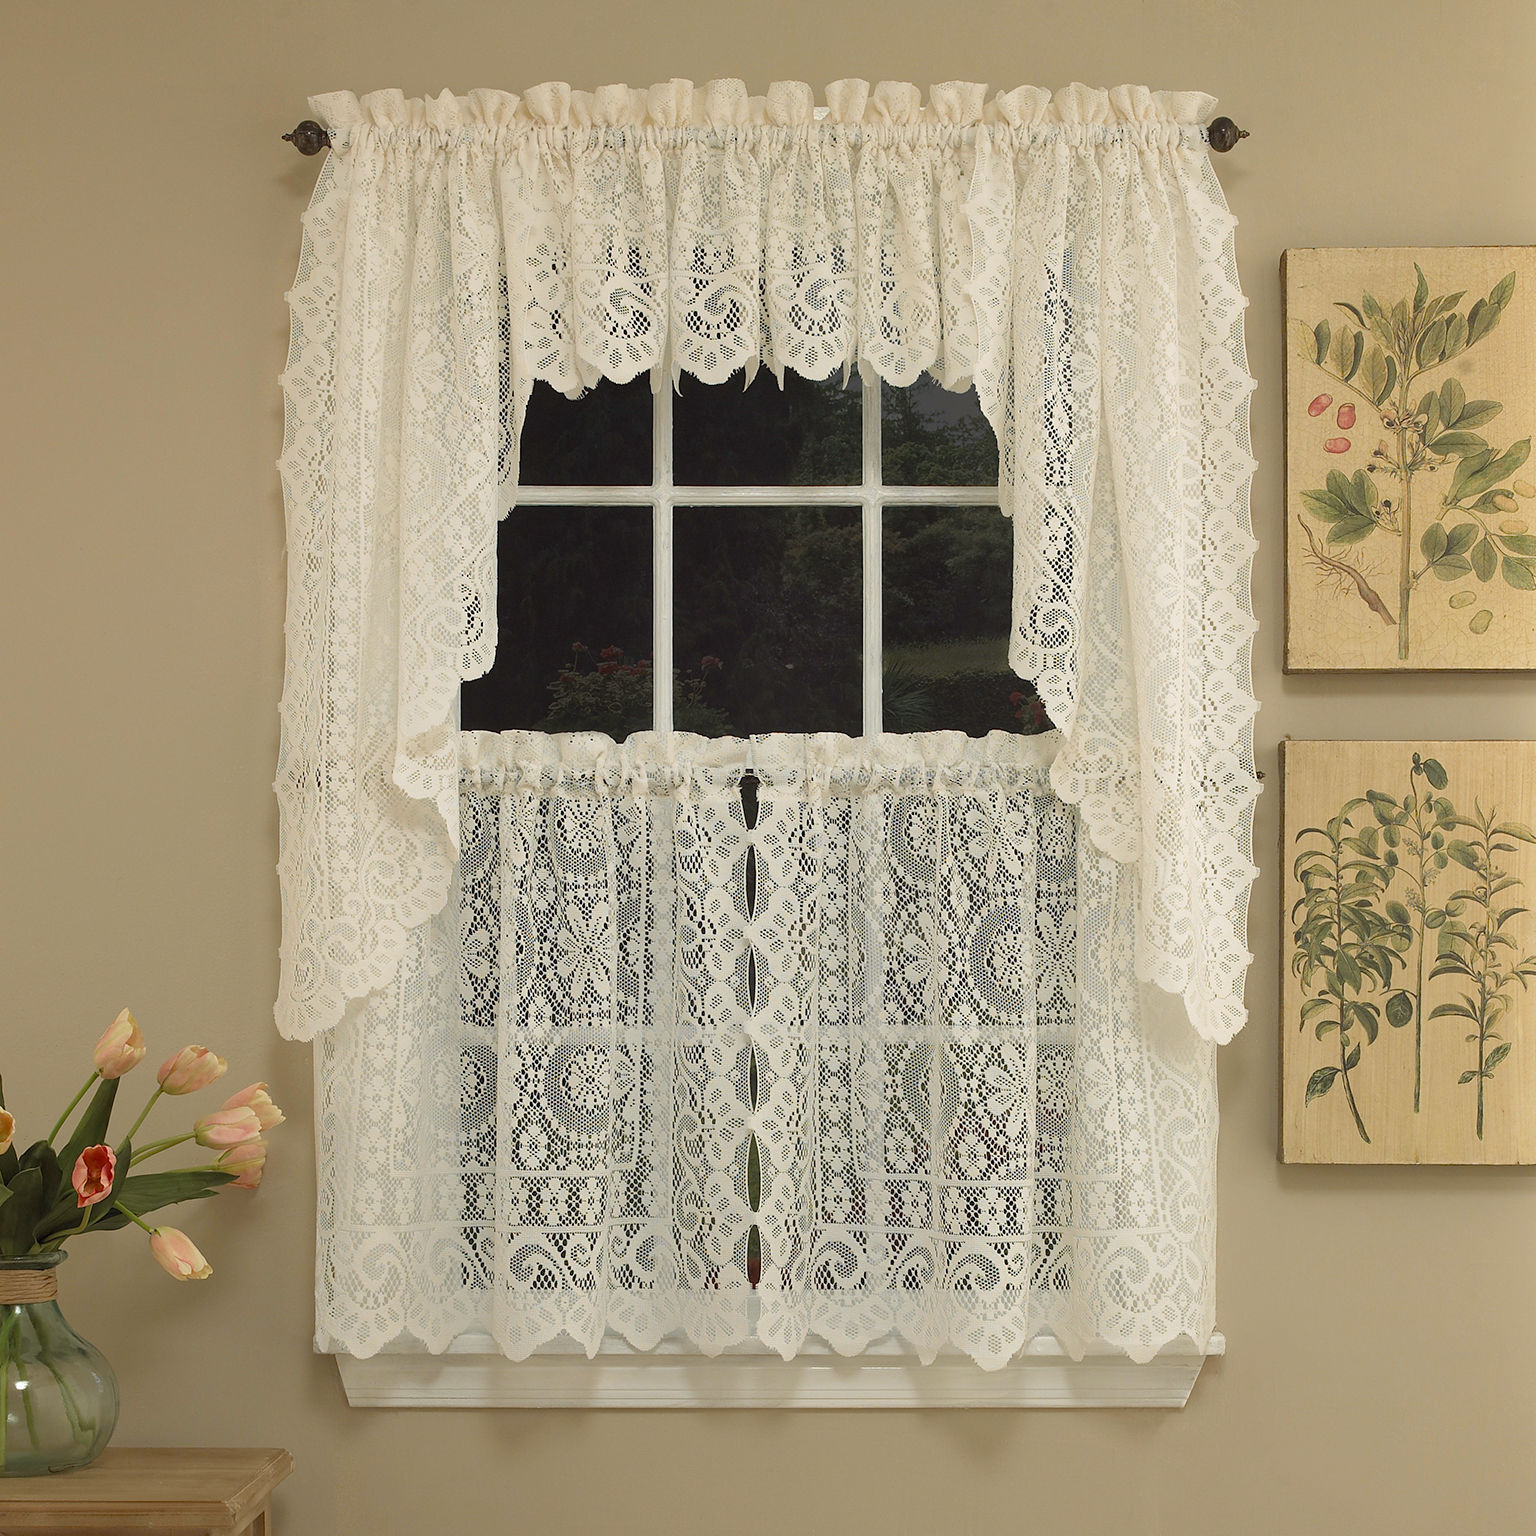 Hopewell Heavy Cream Lace Kitchen Curtain Choice Of Tier Valance Or Swag For Luxurious Old World Style Lace Window Curtain Panels (View 16 of 20)